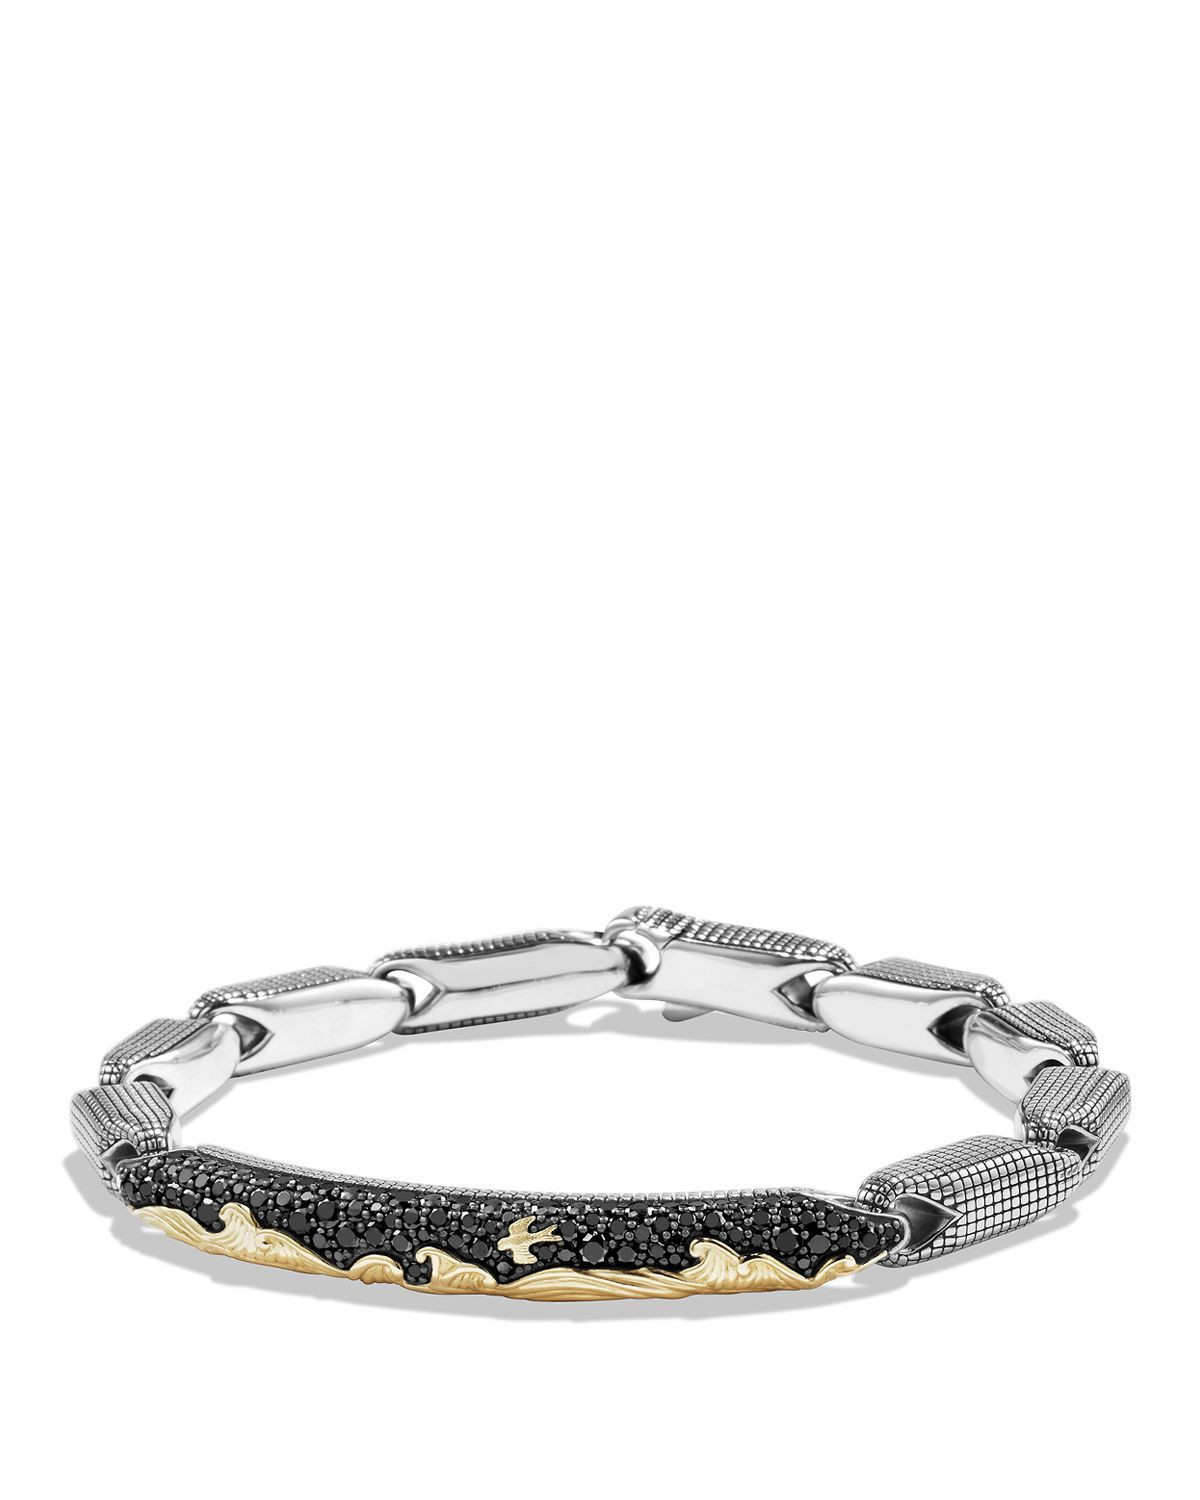 David Yurman  Waves Pavé ID Bracelet with 18K Gold and Black Diamonds